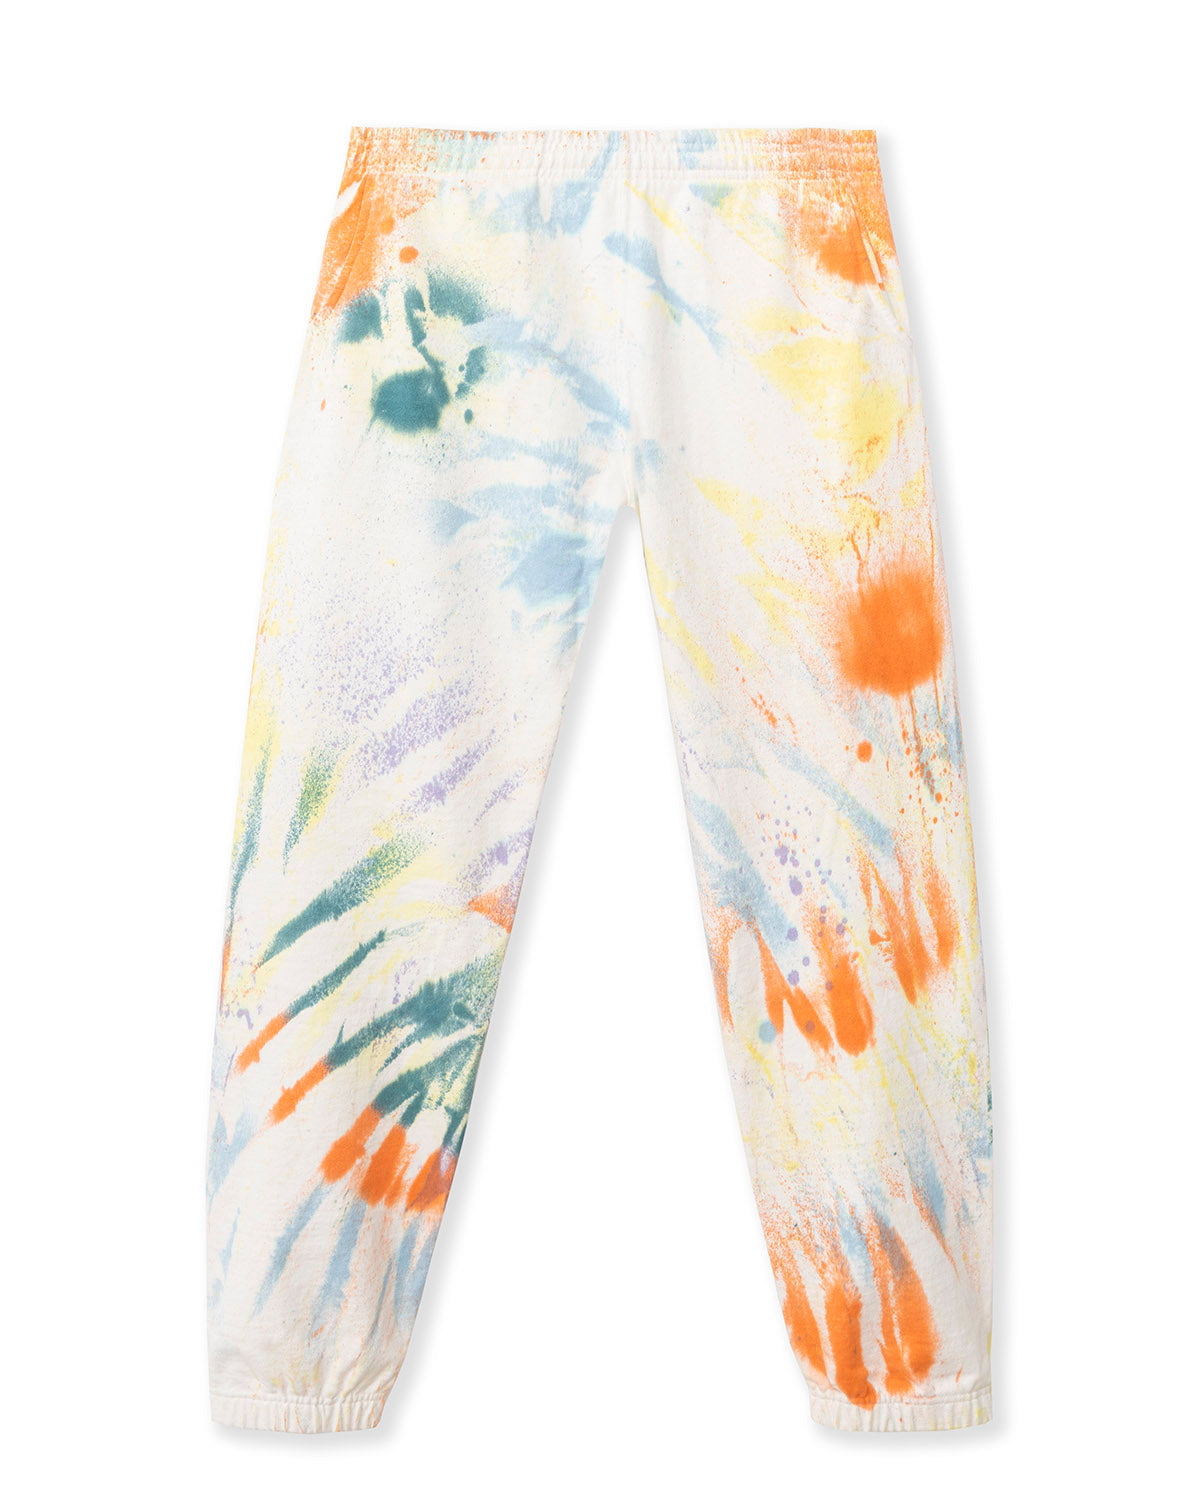 Mixed Dyed Multi Splatter Sweatpants - Natural